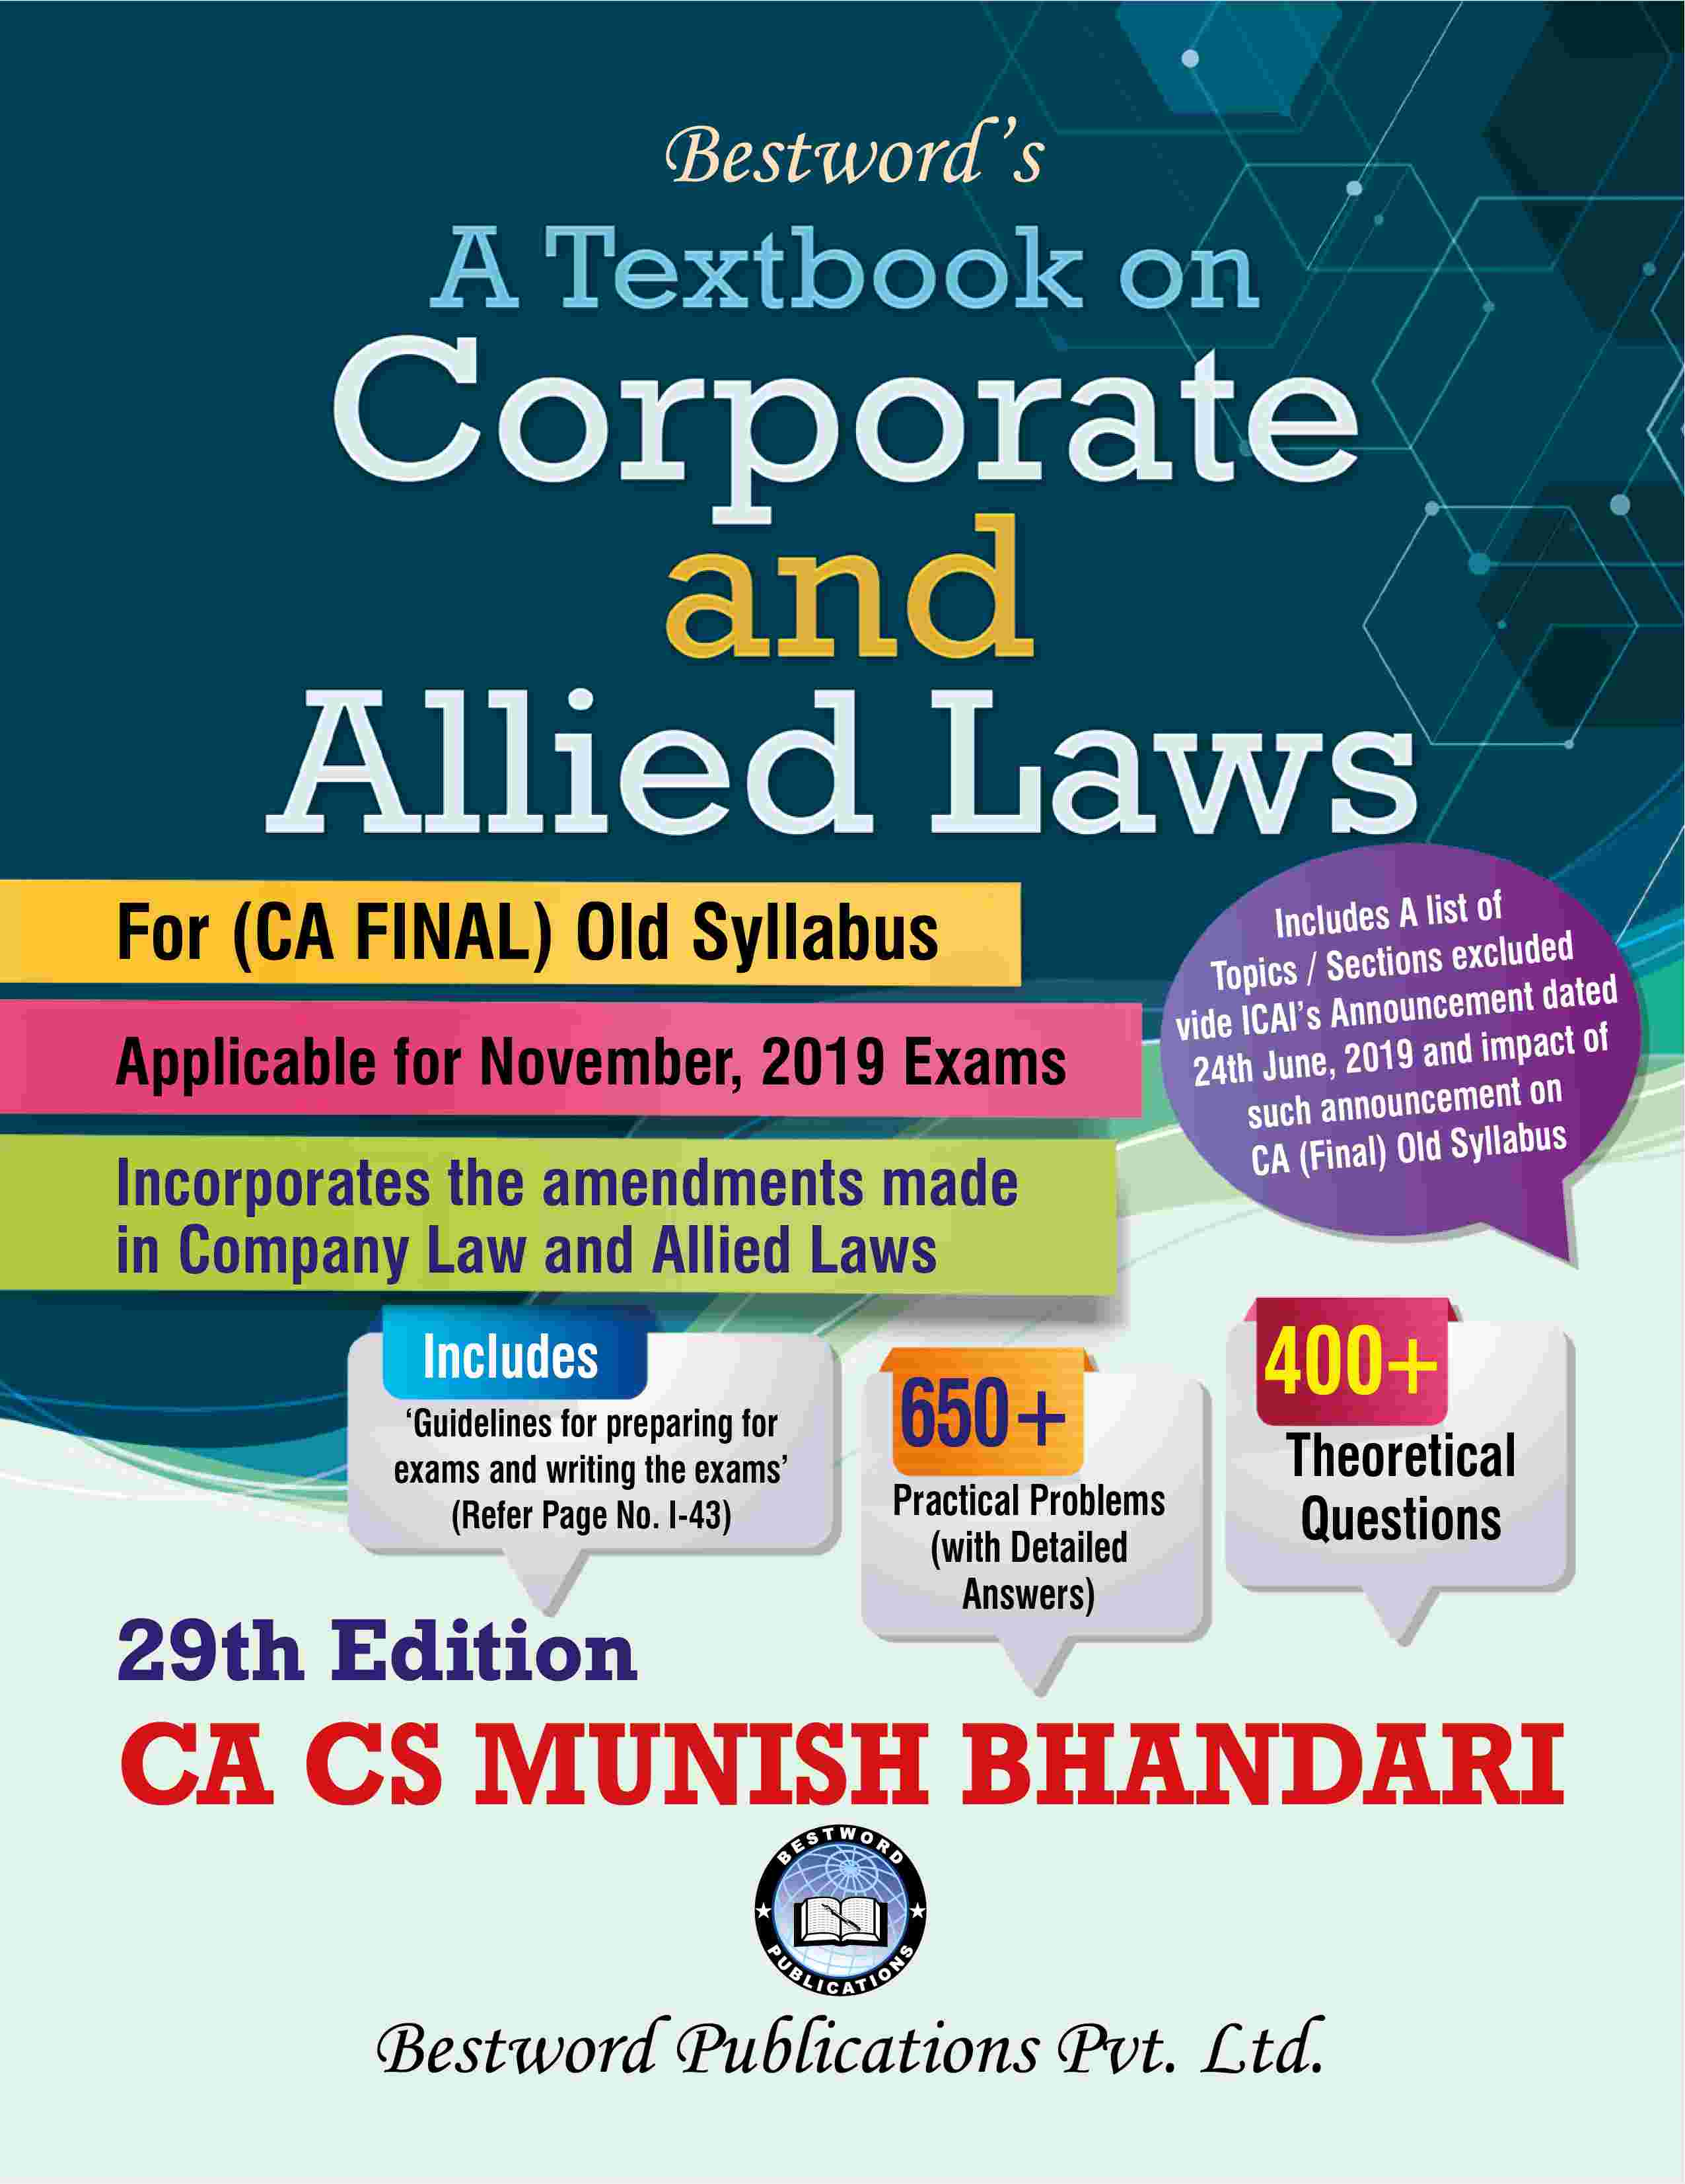 bestword's-a-textbook-on-corporate-and-allied-laws---by-ca-cs-munish-bhandari---29th-edition---for-ca-(final)-november,-2019-exams-(old-syllabus)